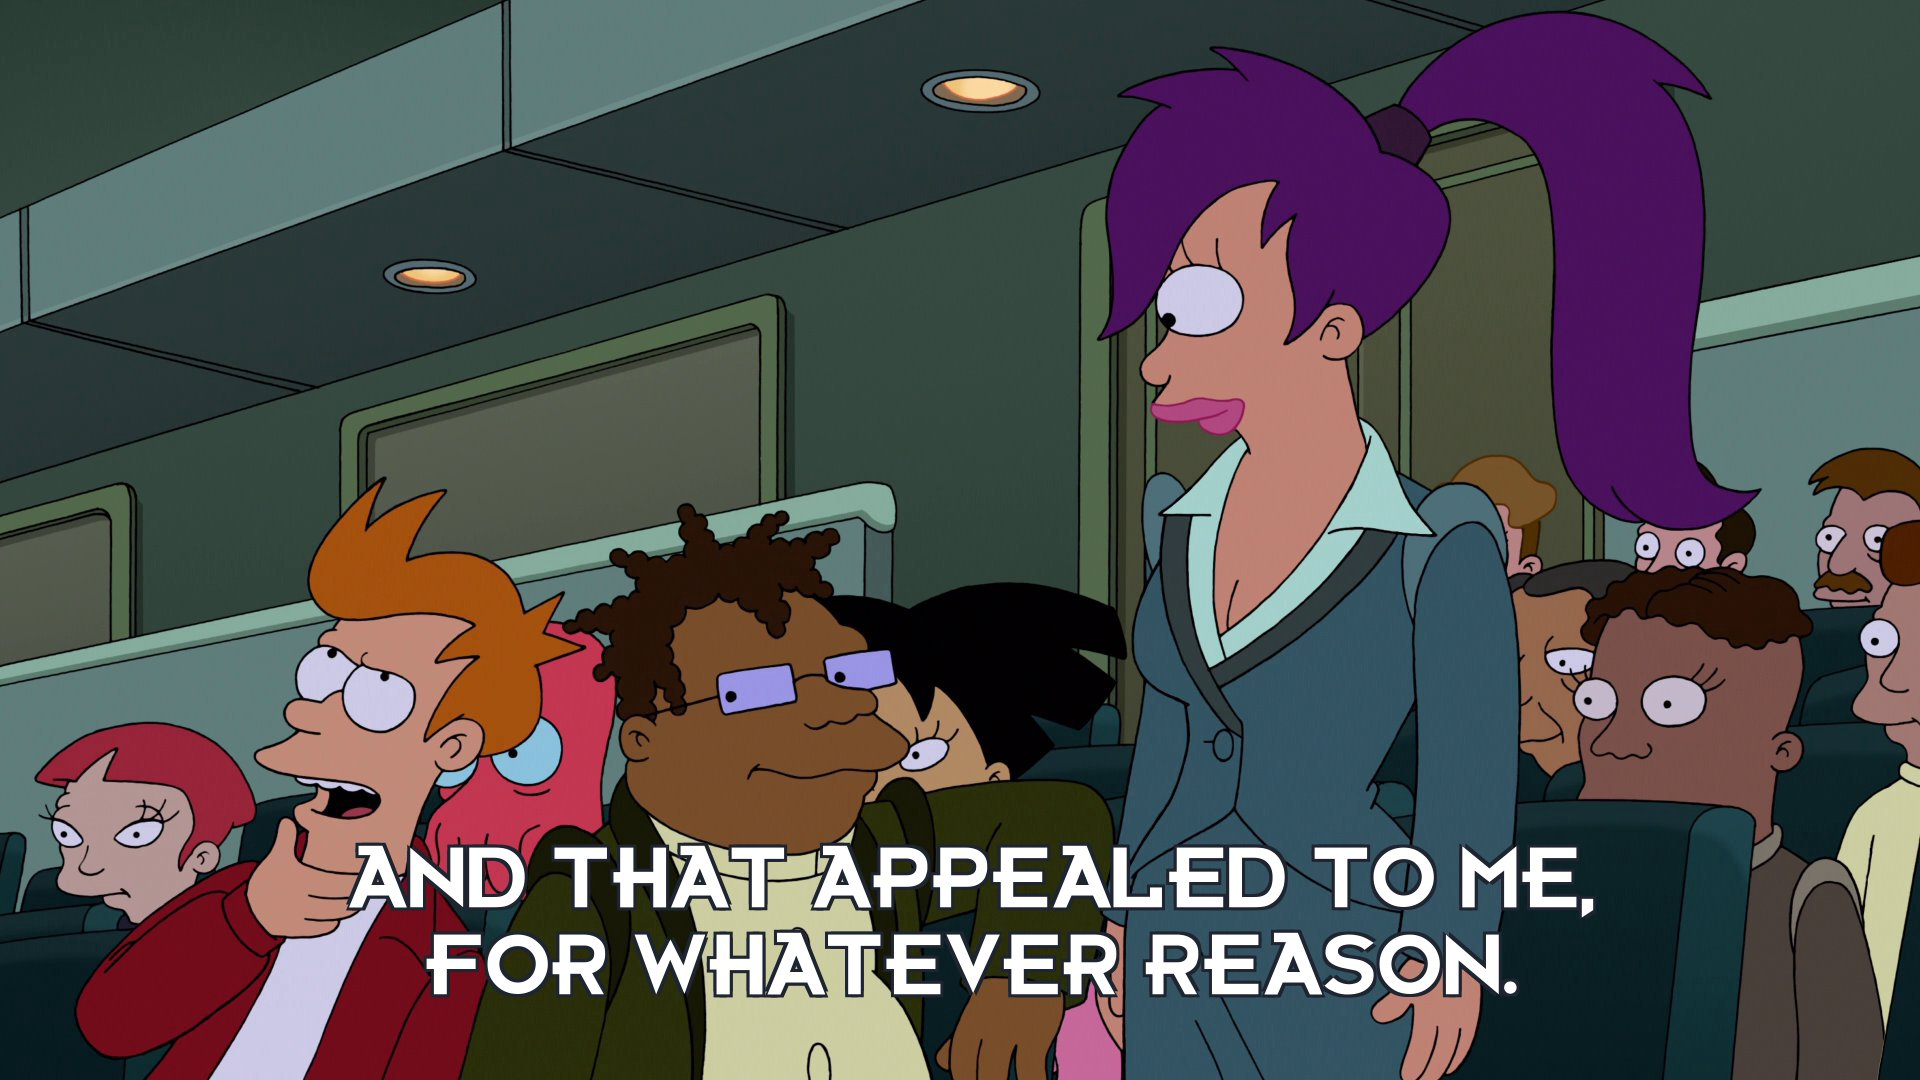 Philip J Fry: And that appealed to me, for whatever reason.